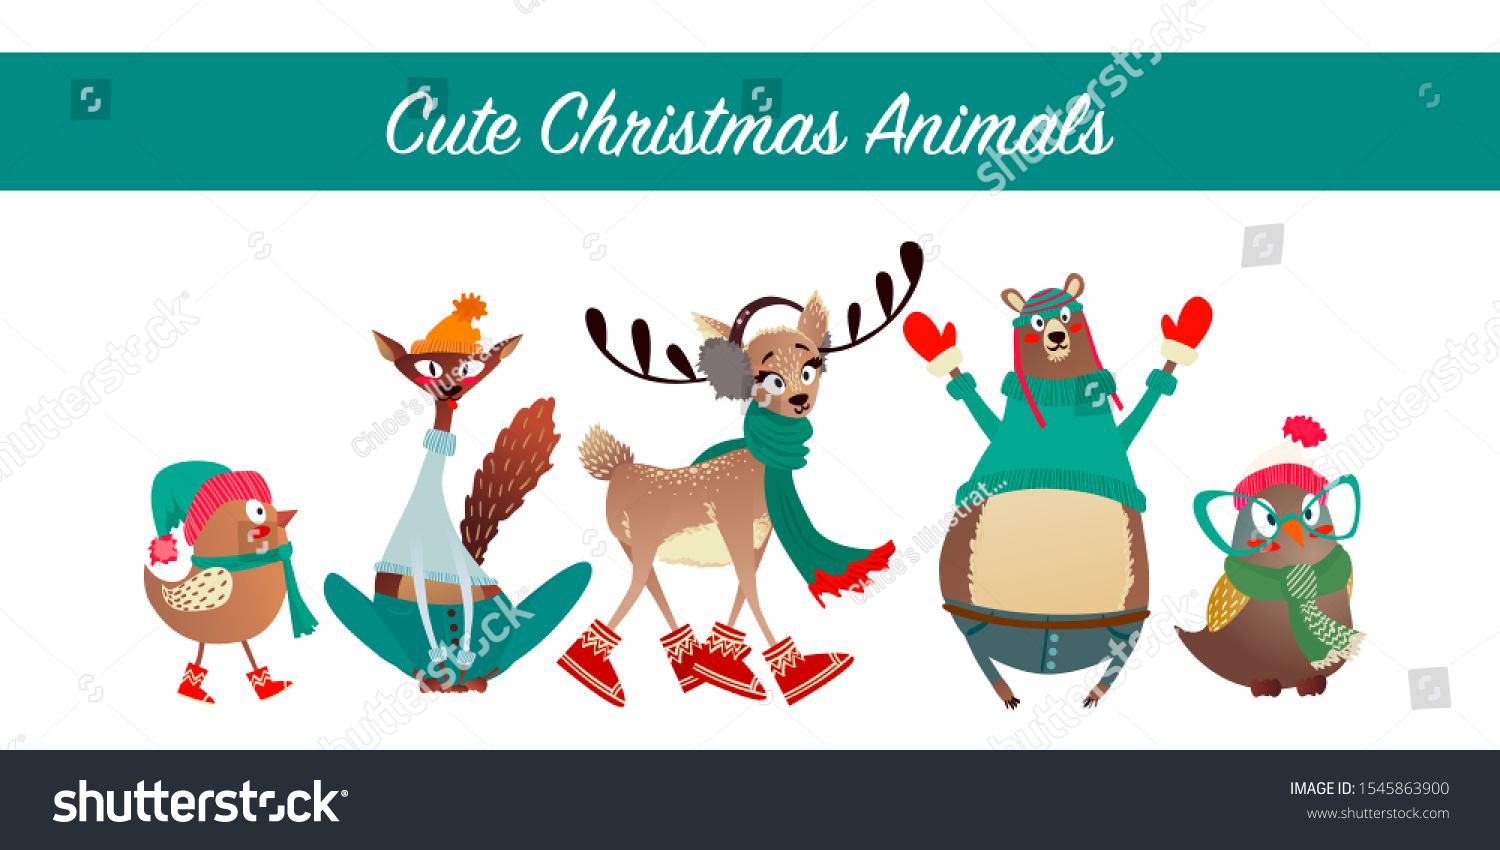 stock-vector-cute-merry-christmas-animal